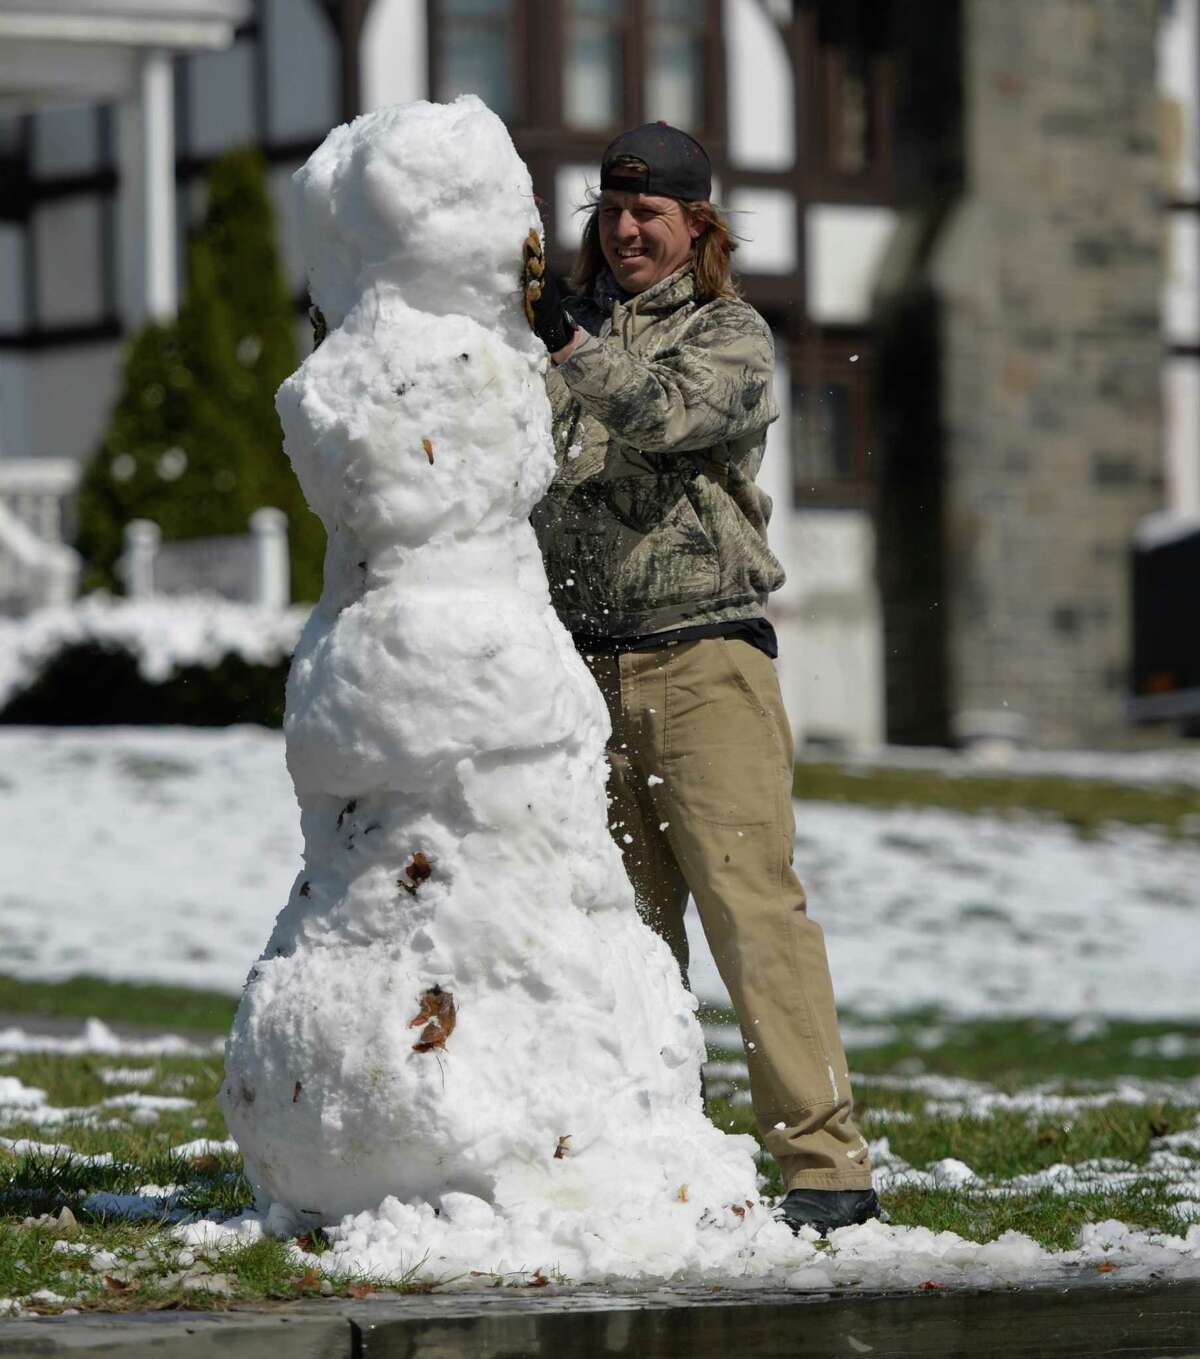 Garrett Gnade took time to make a snowman on Saratoga Avenue Wednesday morning, April 16, 2014, in Waterford, N.Y. A spring snowfall covered the Capital Region. (Skip Dickstein / Times Union)